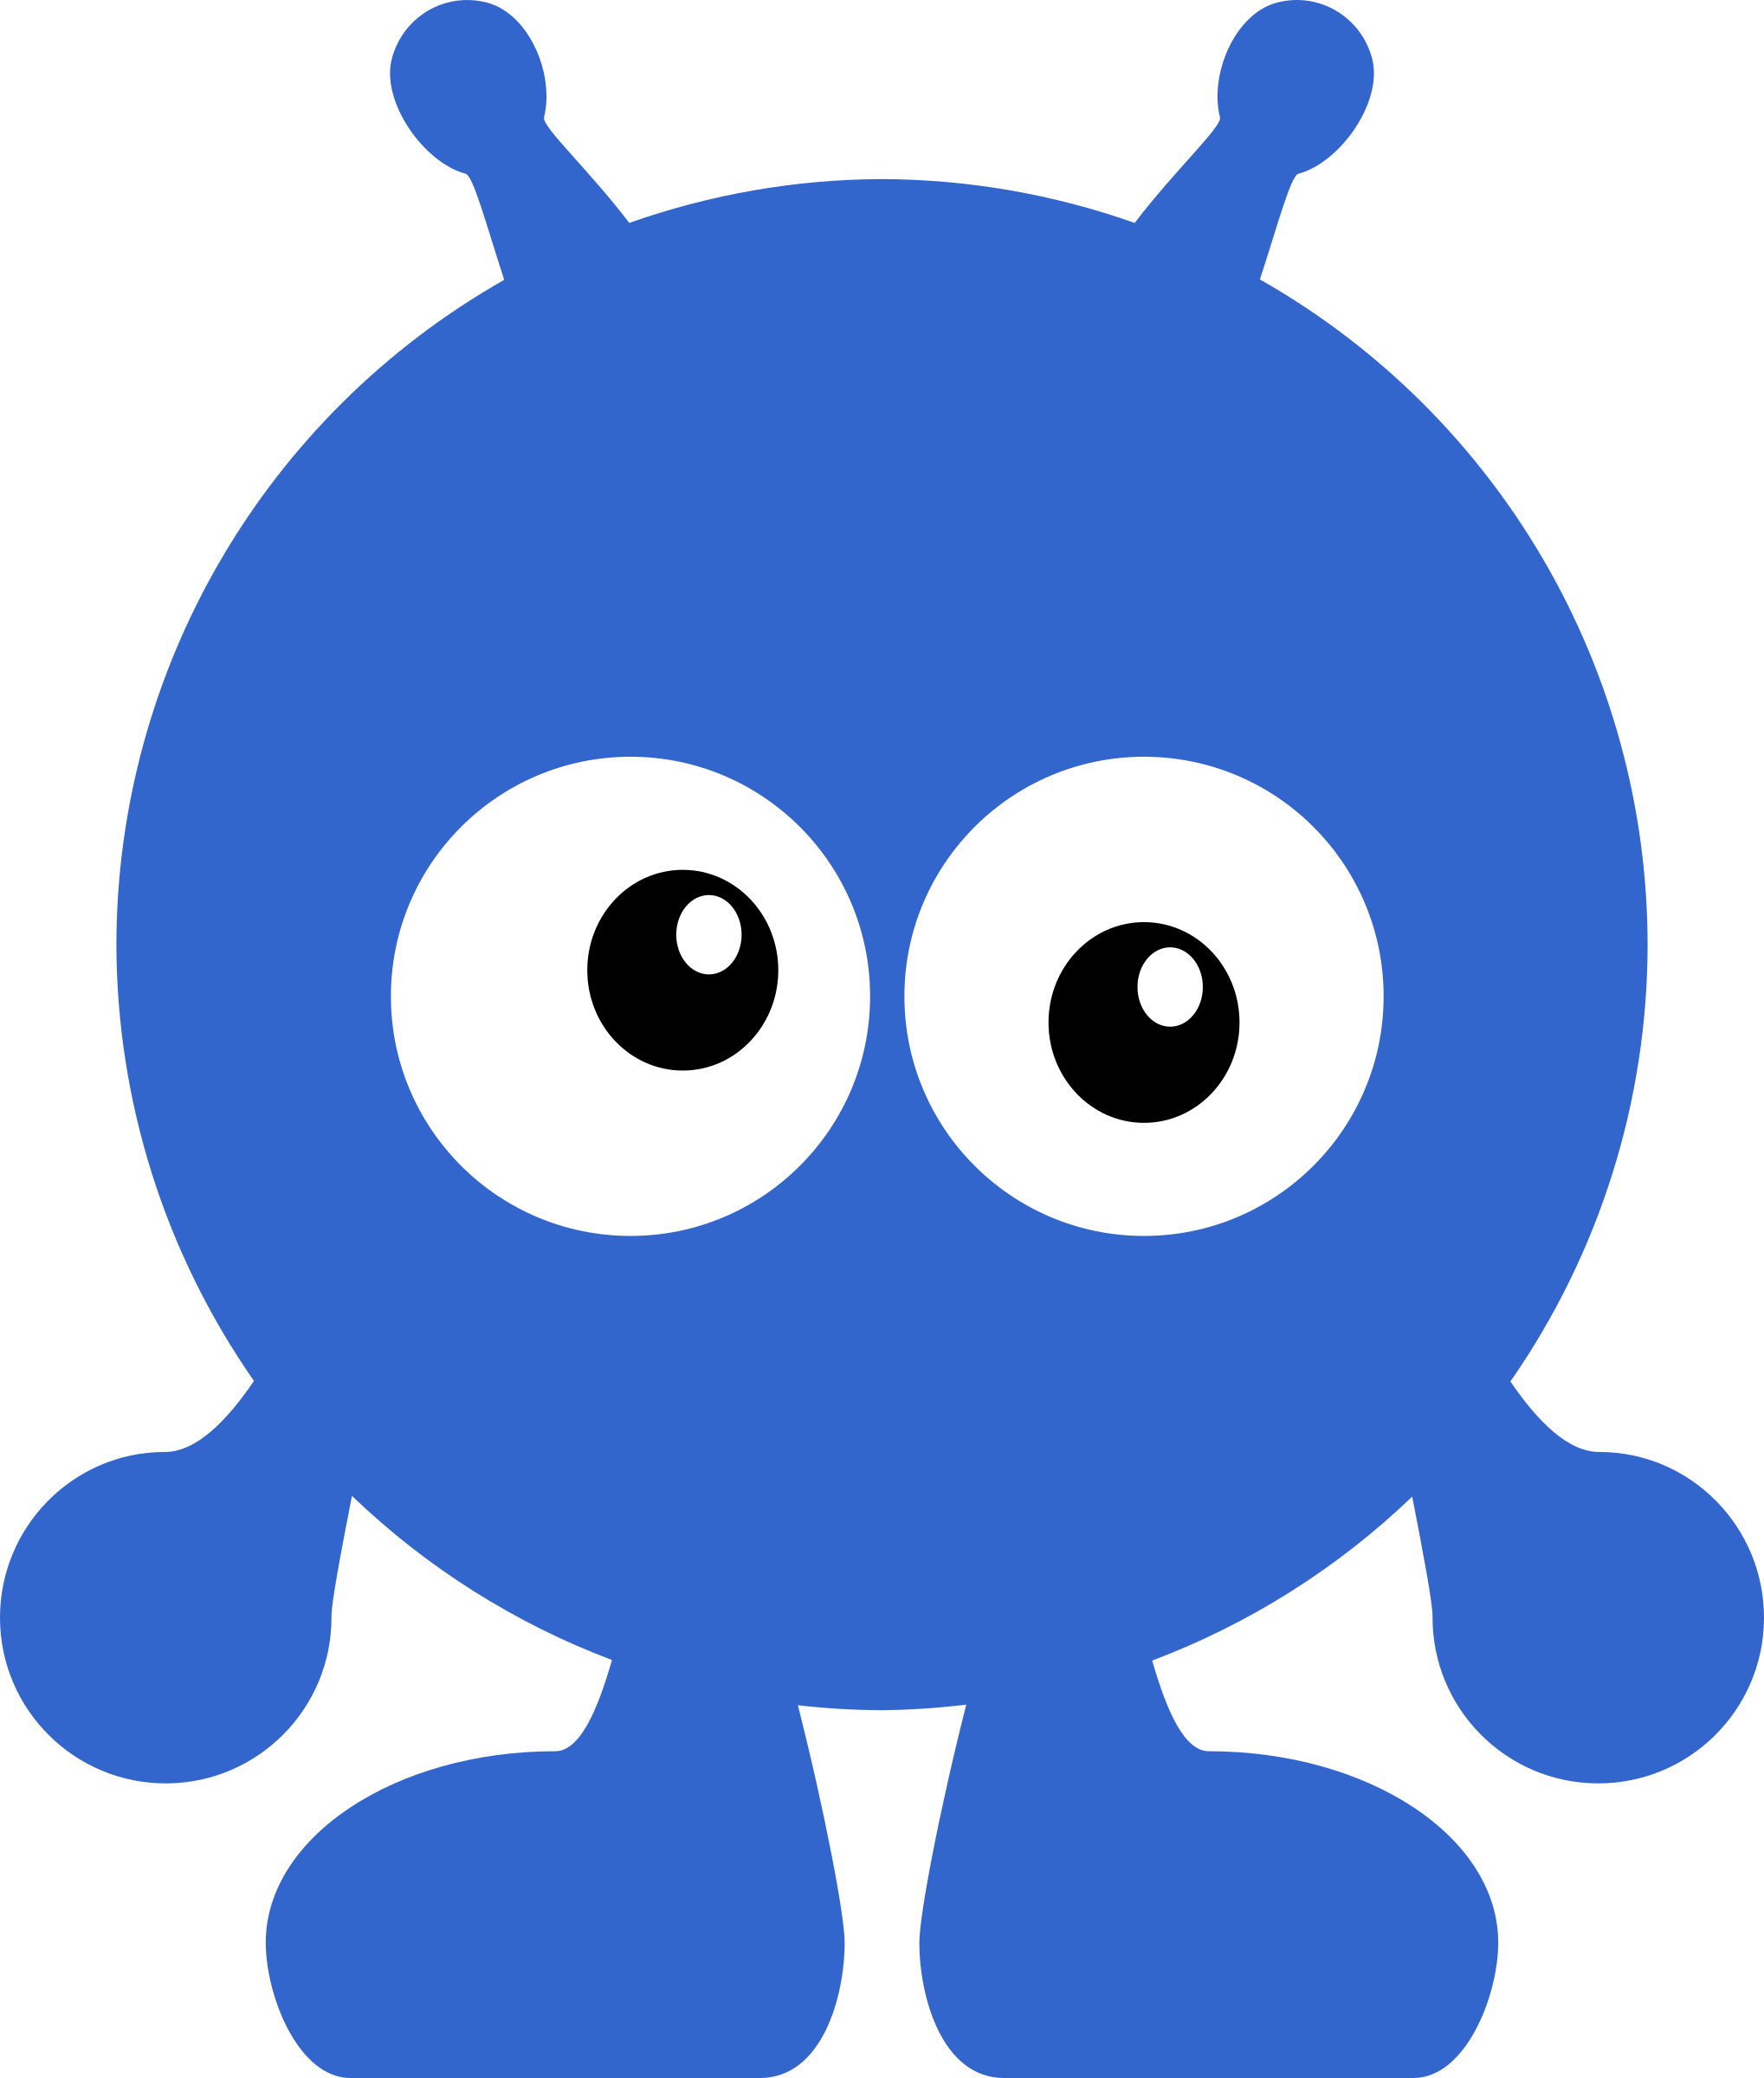 Character big image png. Blue clipart alien